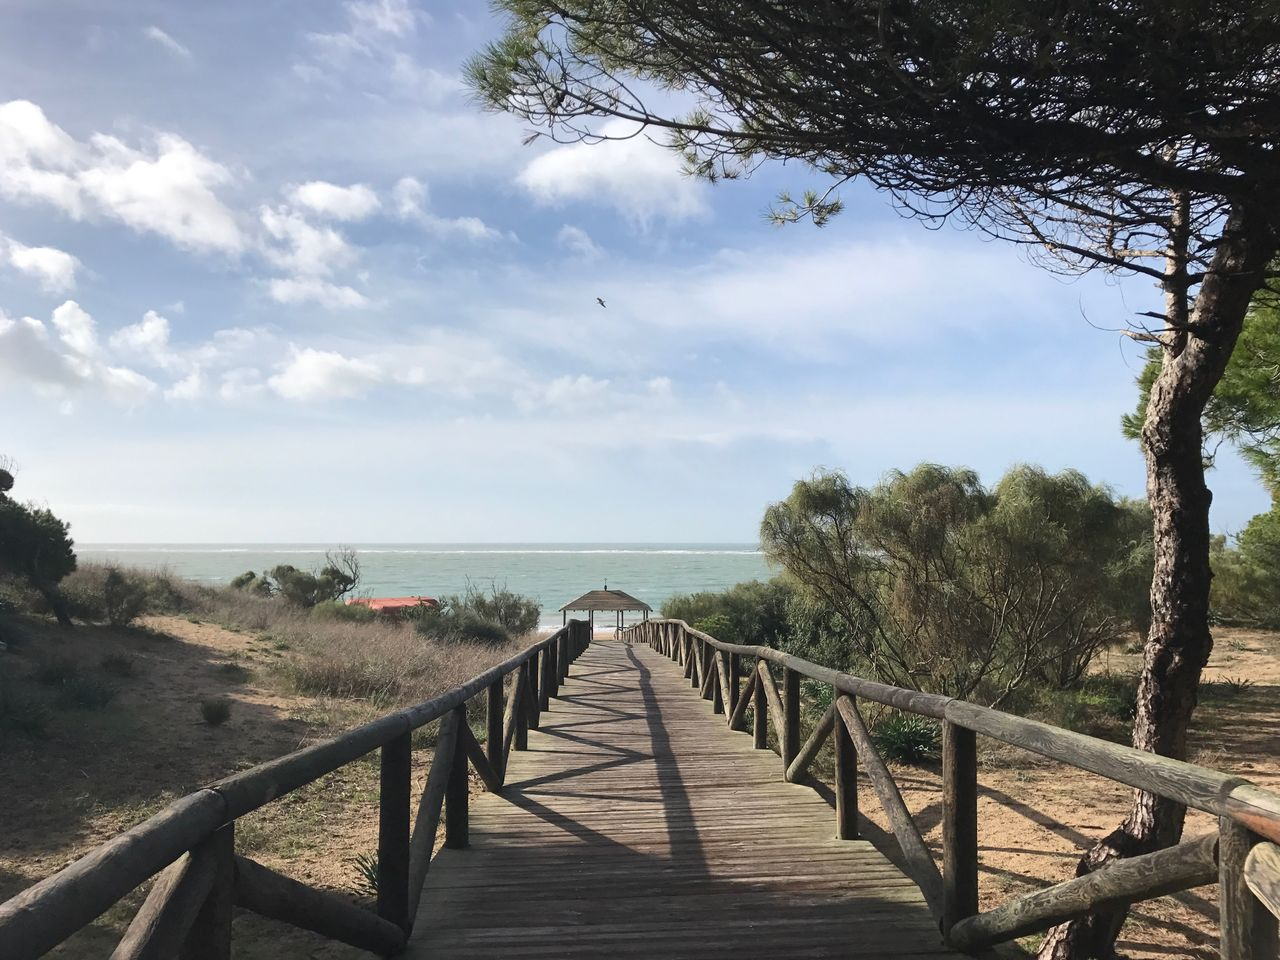 Tree Sky Nature The Way Forward Railing Day Boardwalk Tranquil Scene Landscape Beauty In Nature Tranquility Outdoors Scenics No People Water